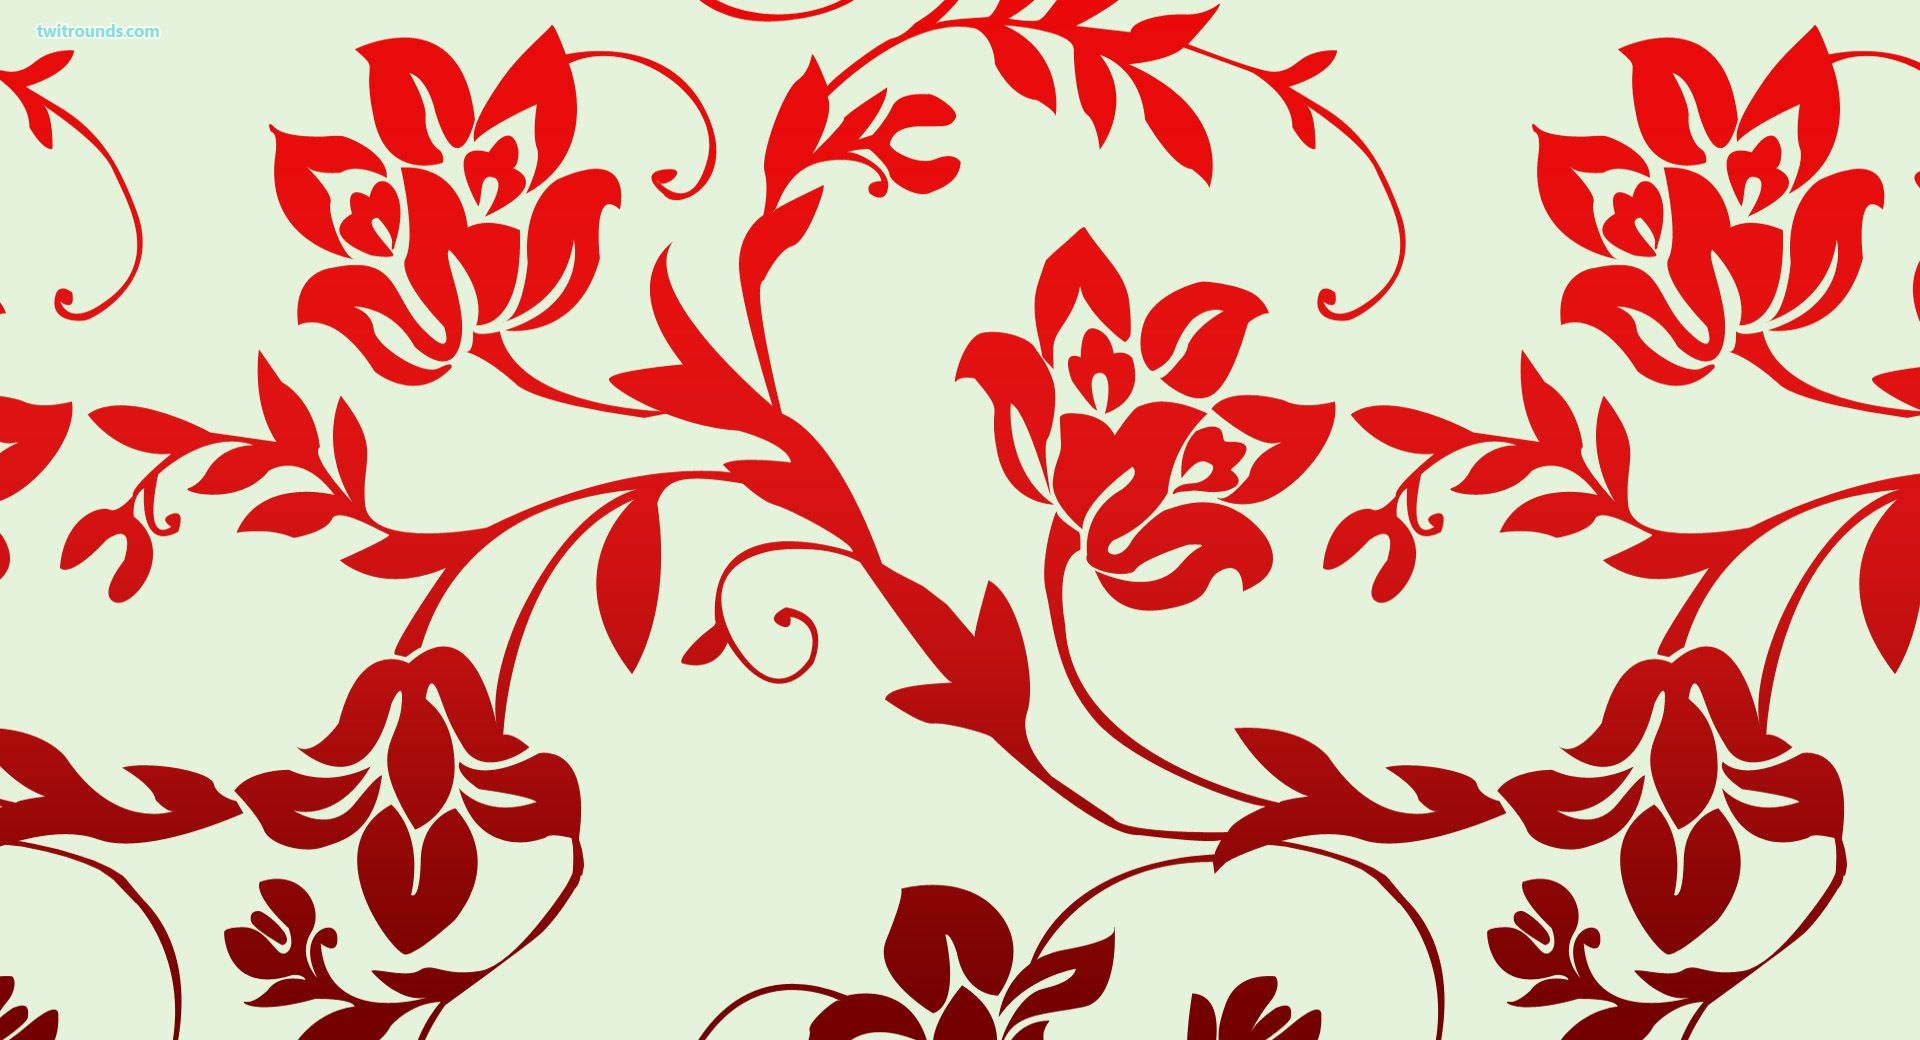 red leaves wallpaper pattern - photo #47